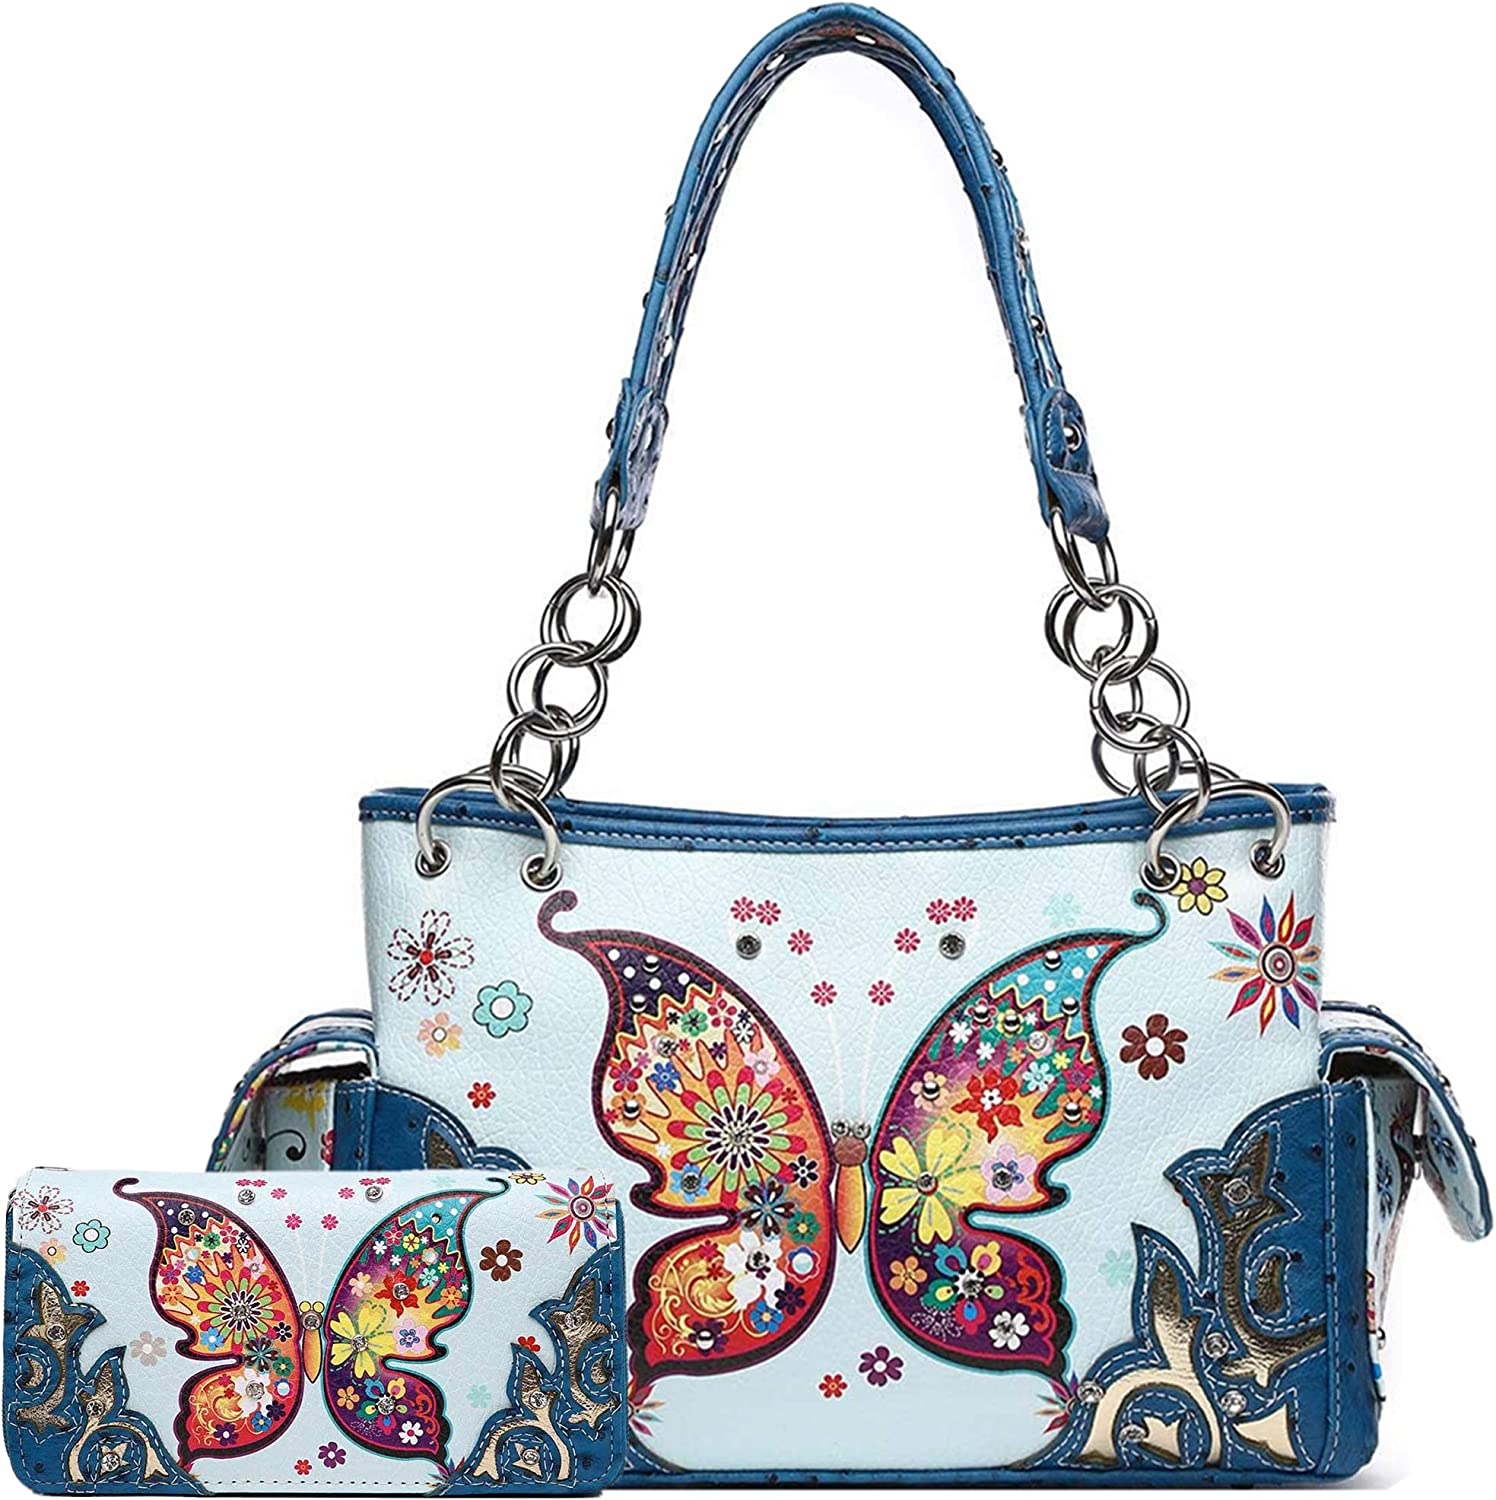 Western Style Butterfly Flower Concealed Carry Spring Purse Country Handbag Women Shoulder Bag Wallet Set